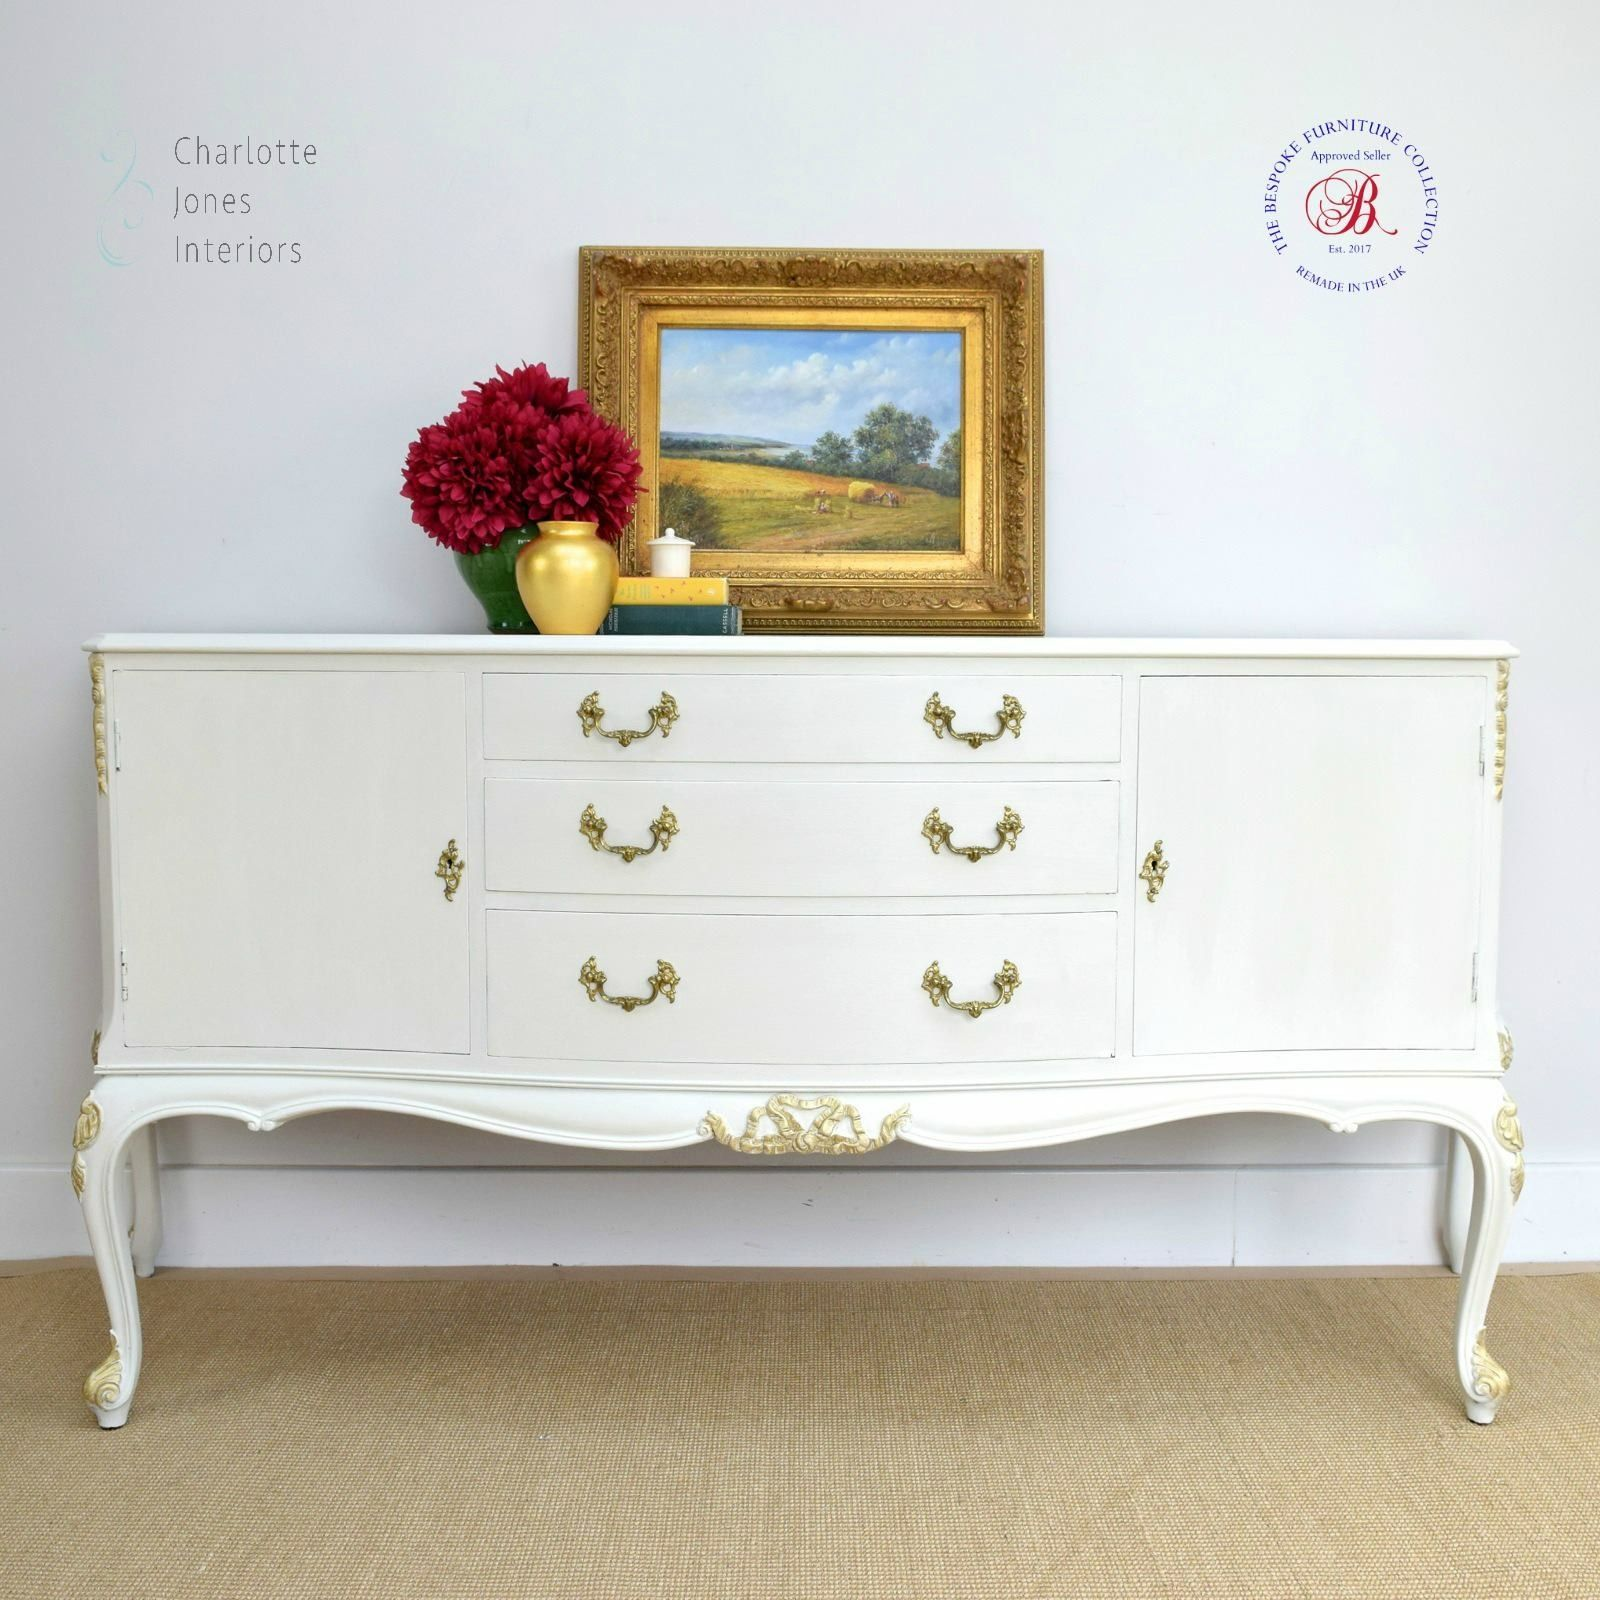 A beautiful handmade bridgecraft sideboard painted in cream